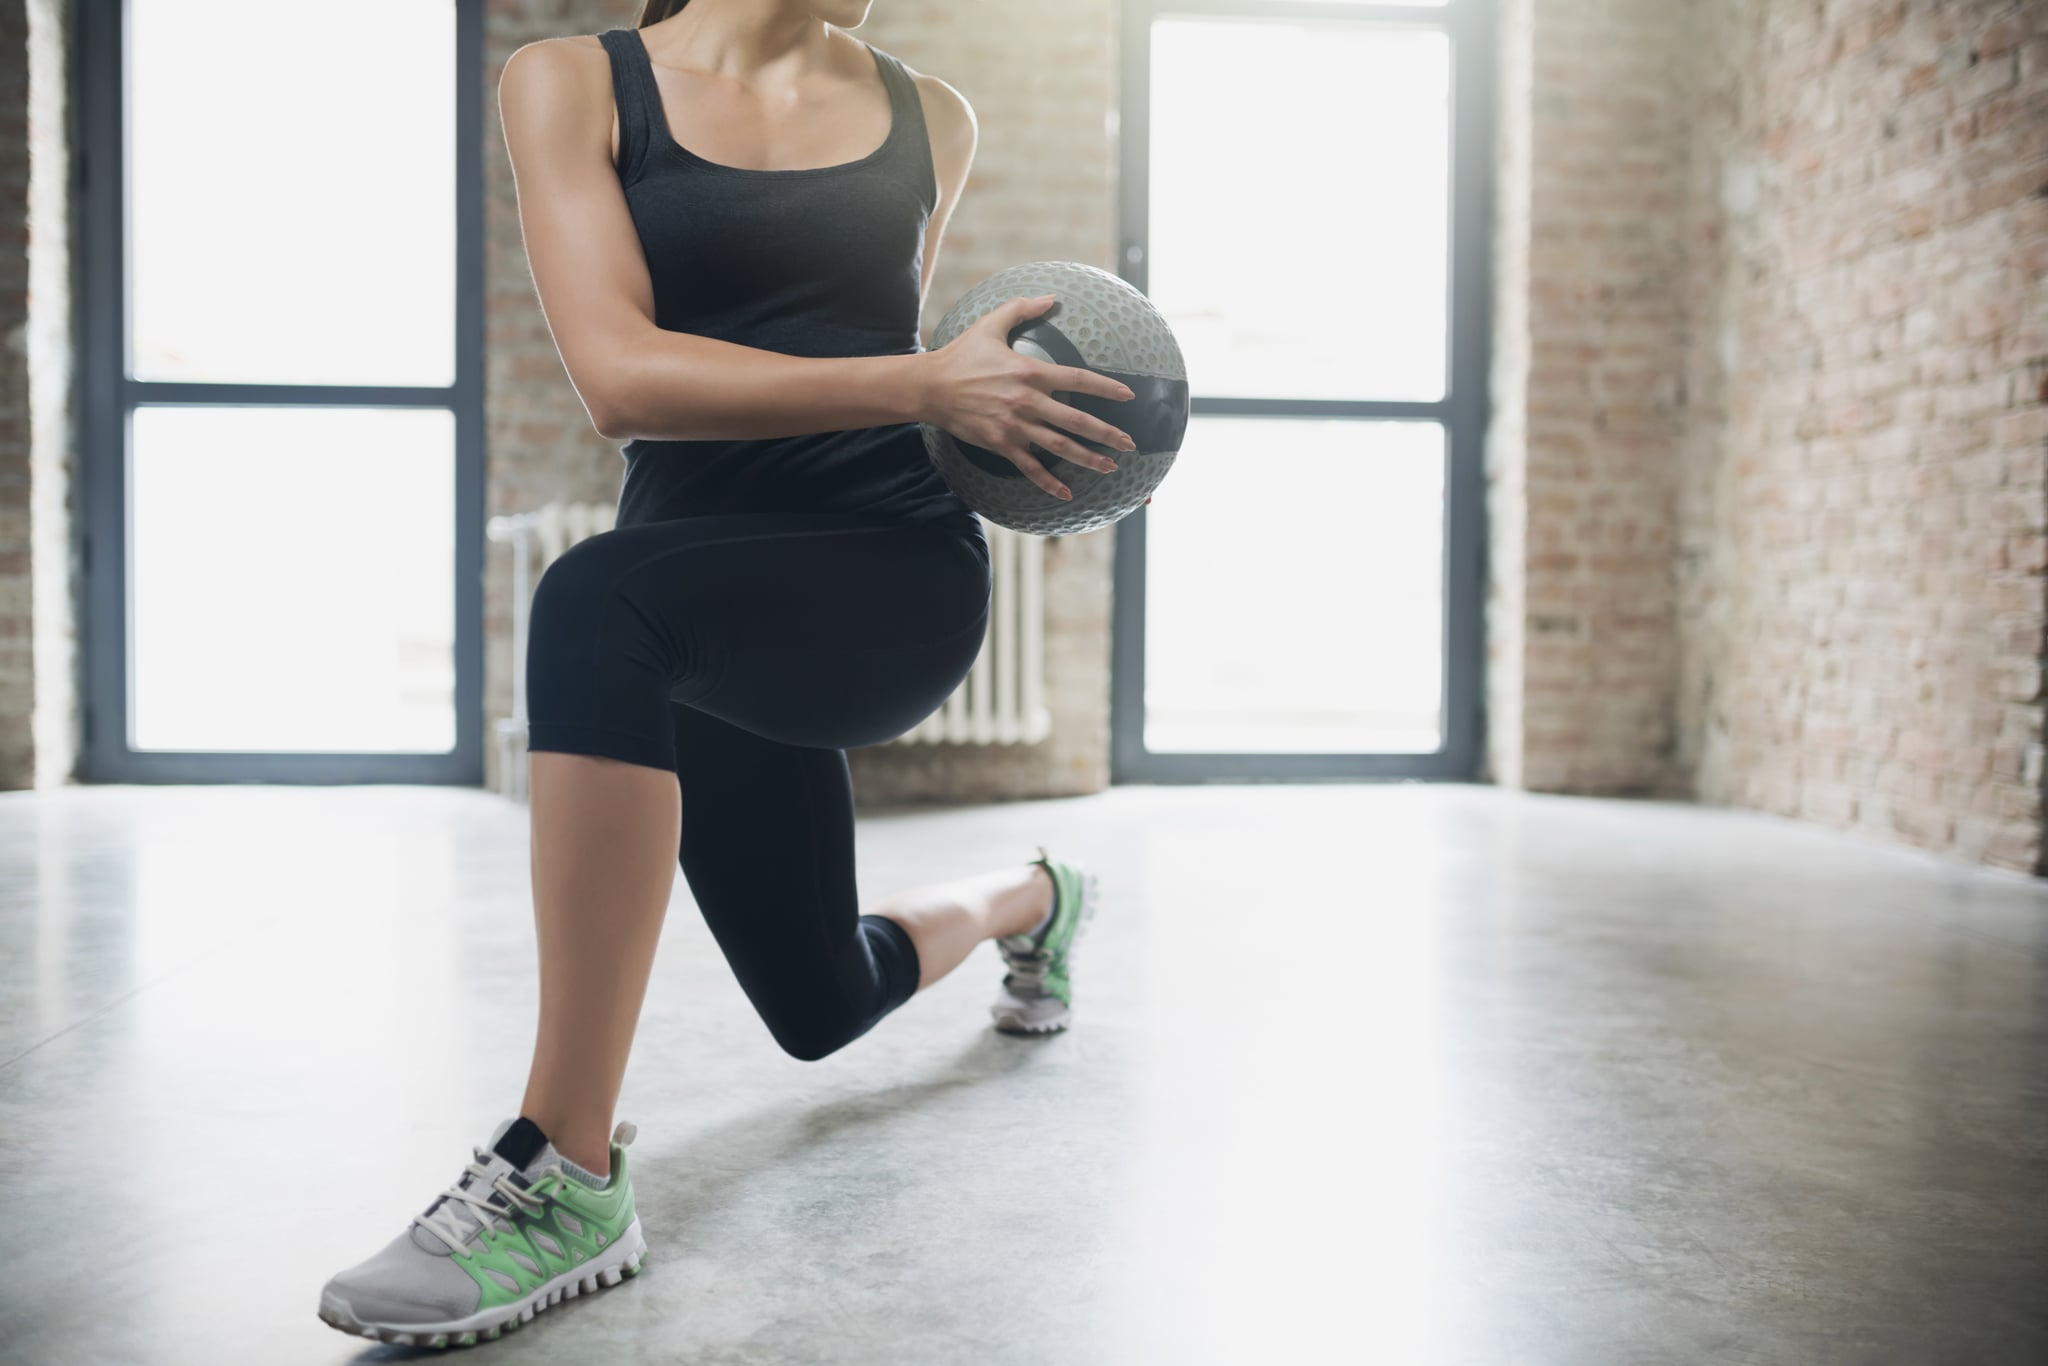 An unrecognisable young woman doing side lunges with medicine ball.